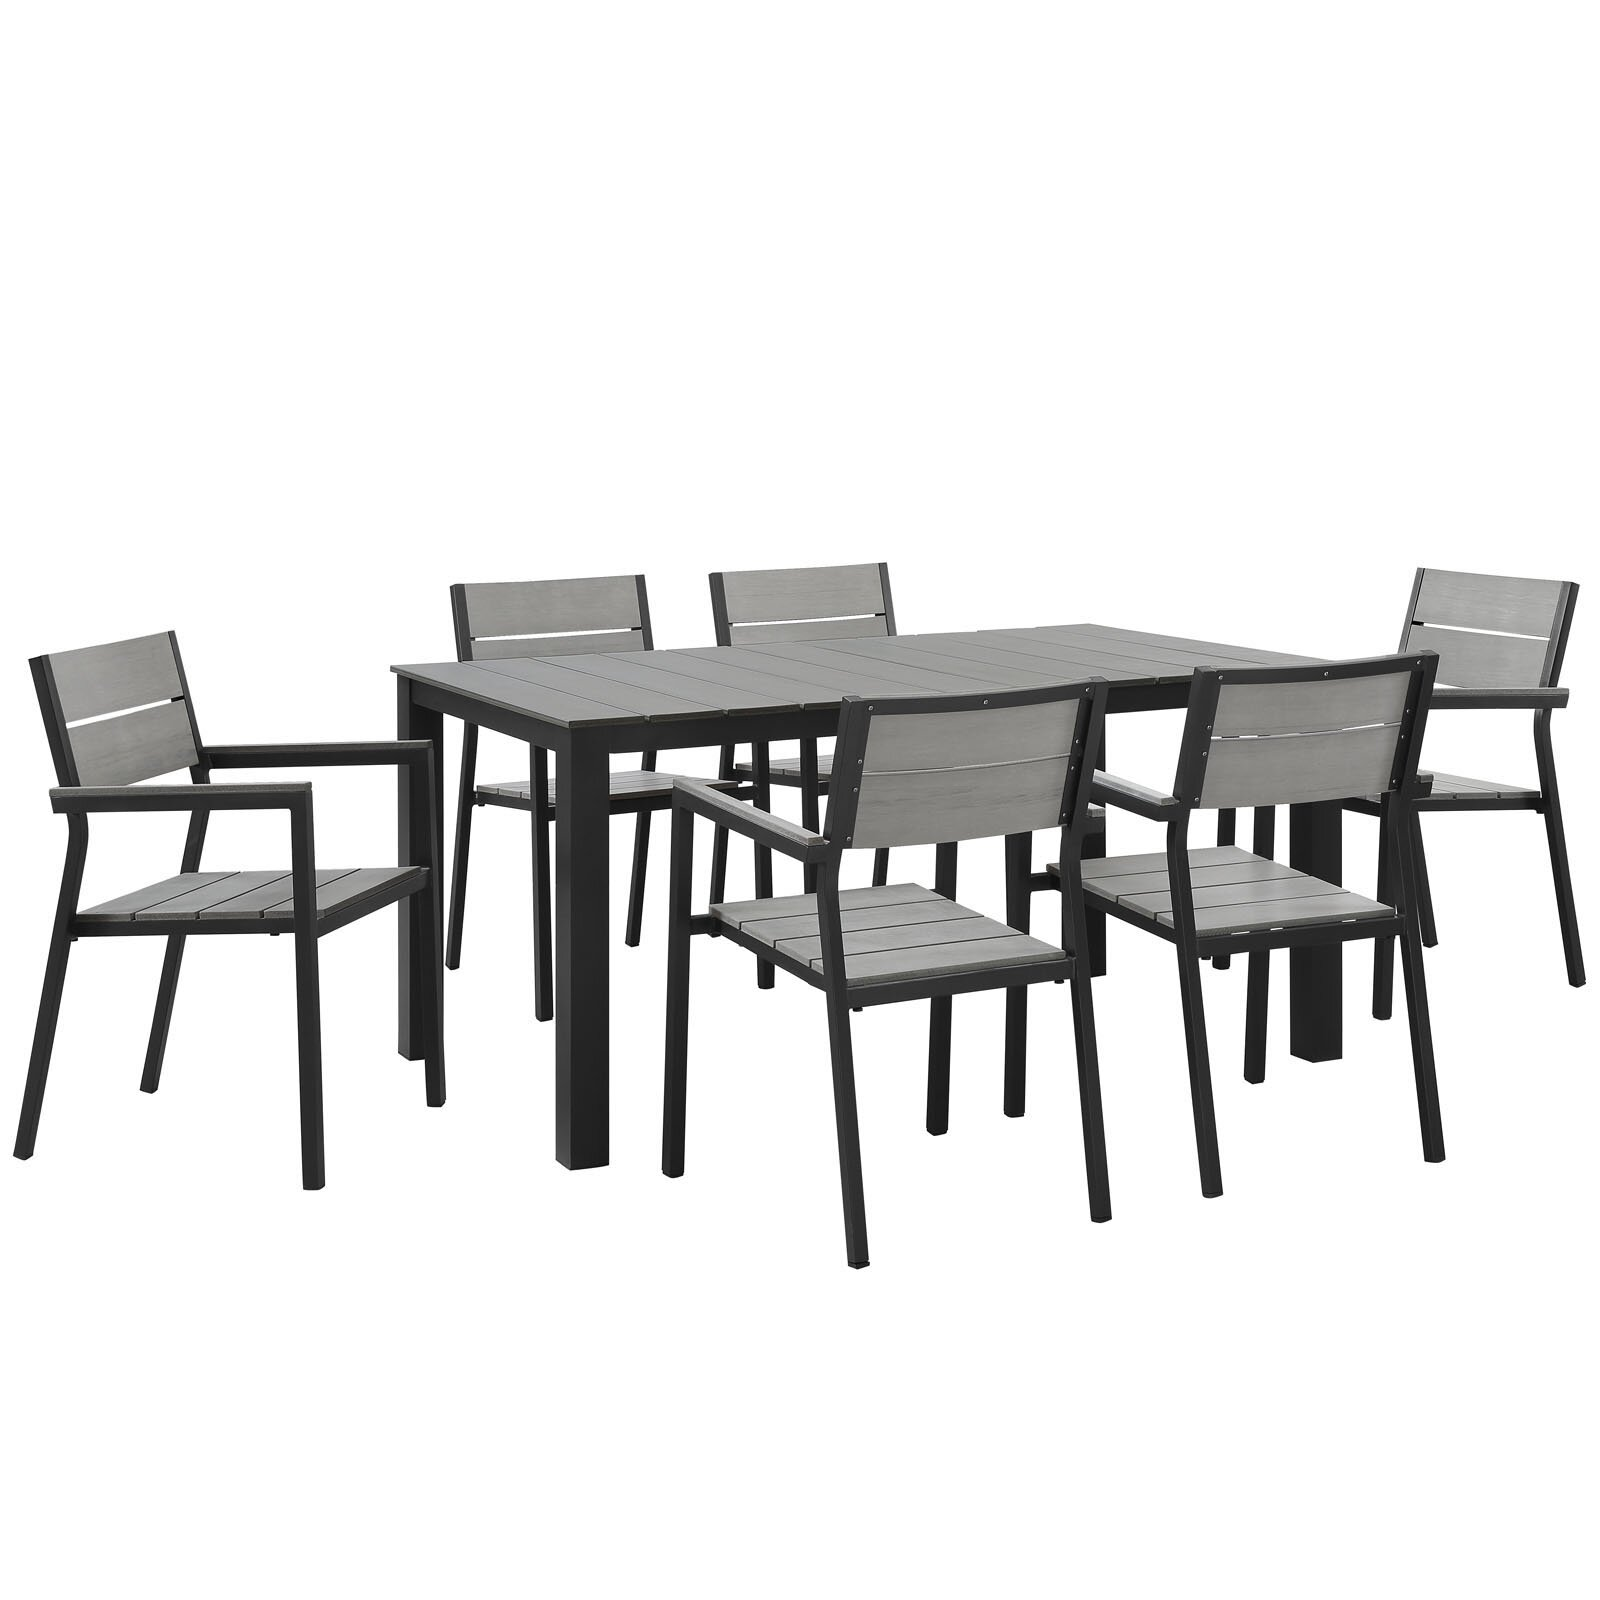 Modway maine 7 piece outdoor patio dining set reviews for 7 piece dining set